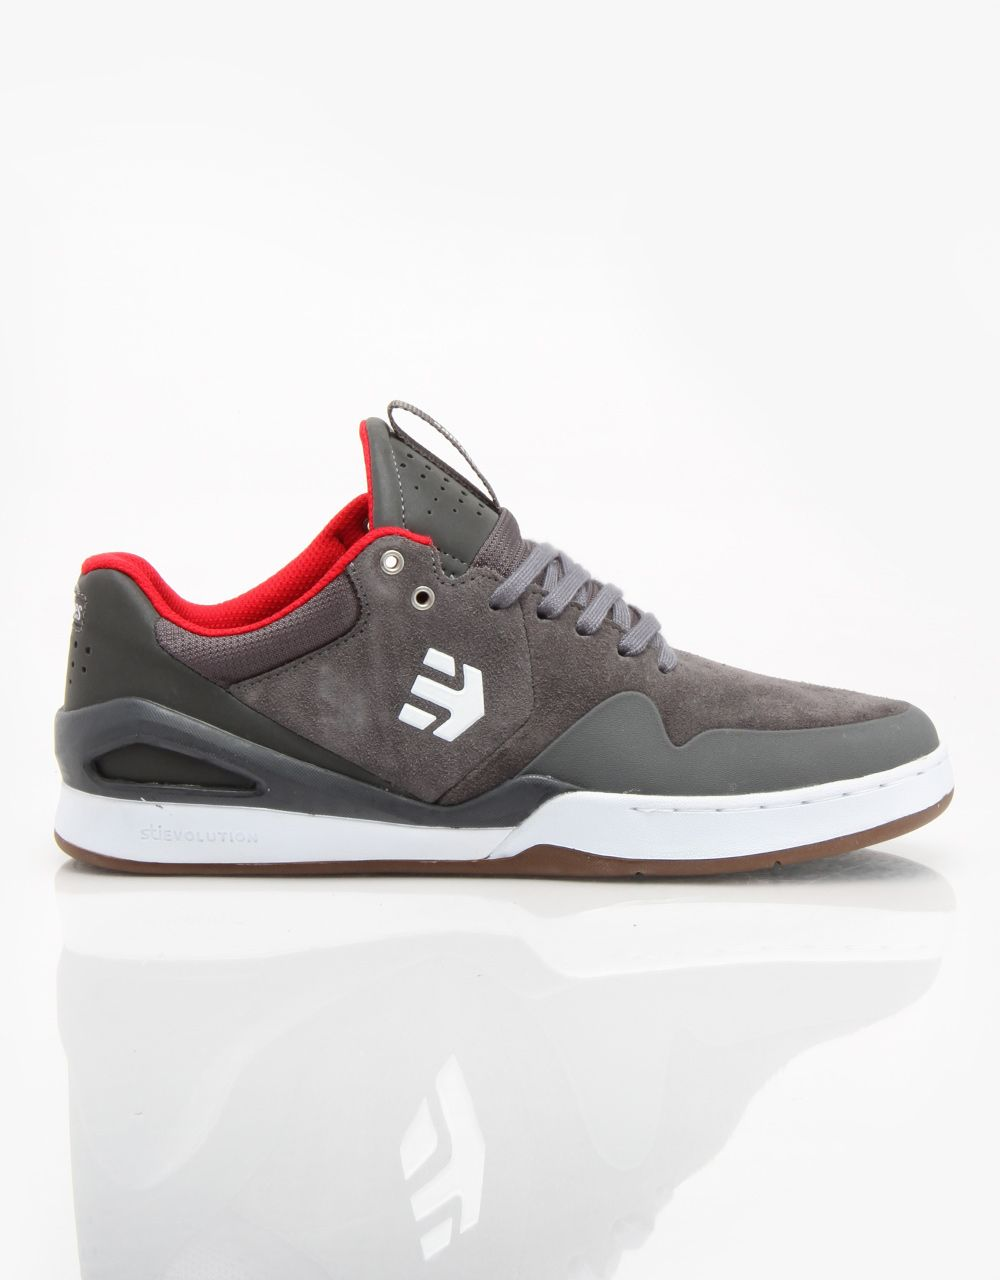 955902c458 Etnies Marana Elite (Ryan Sheckler) Skate Shoes - Grey Red White -  RouteOne.co.uk